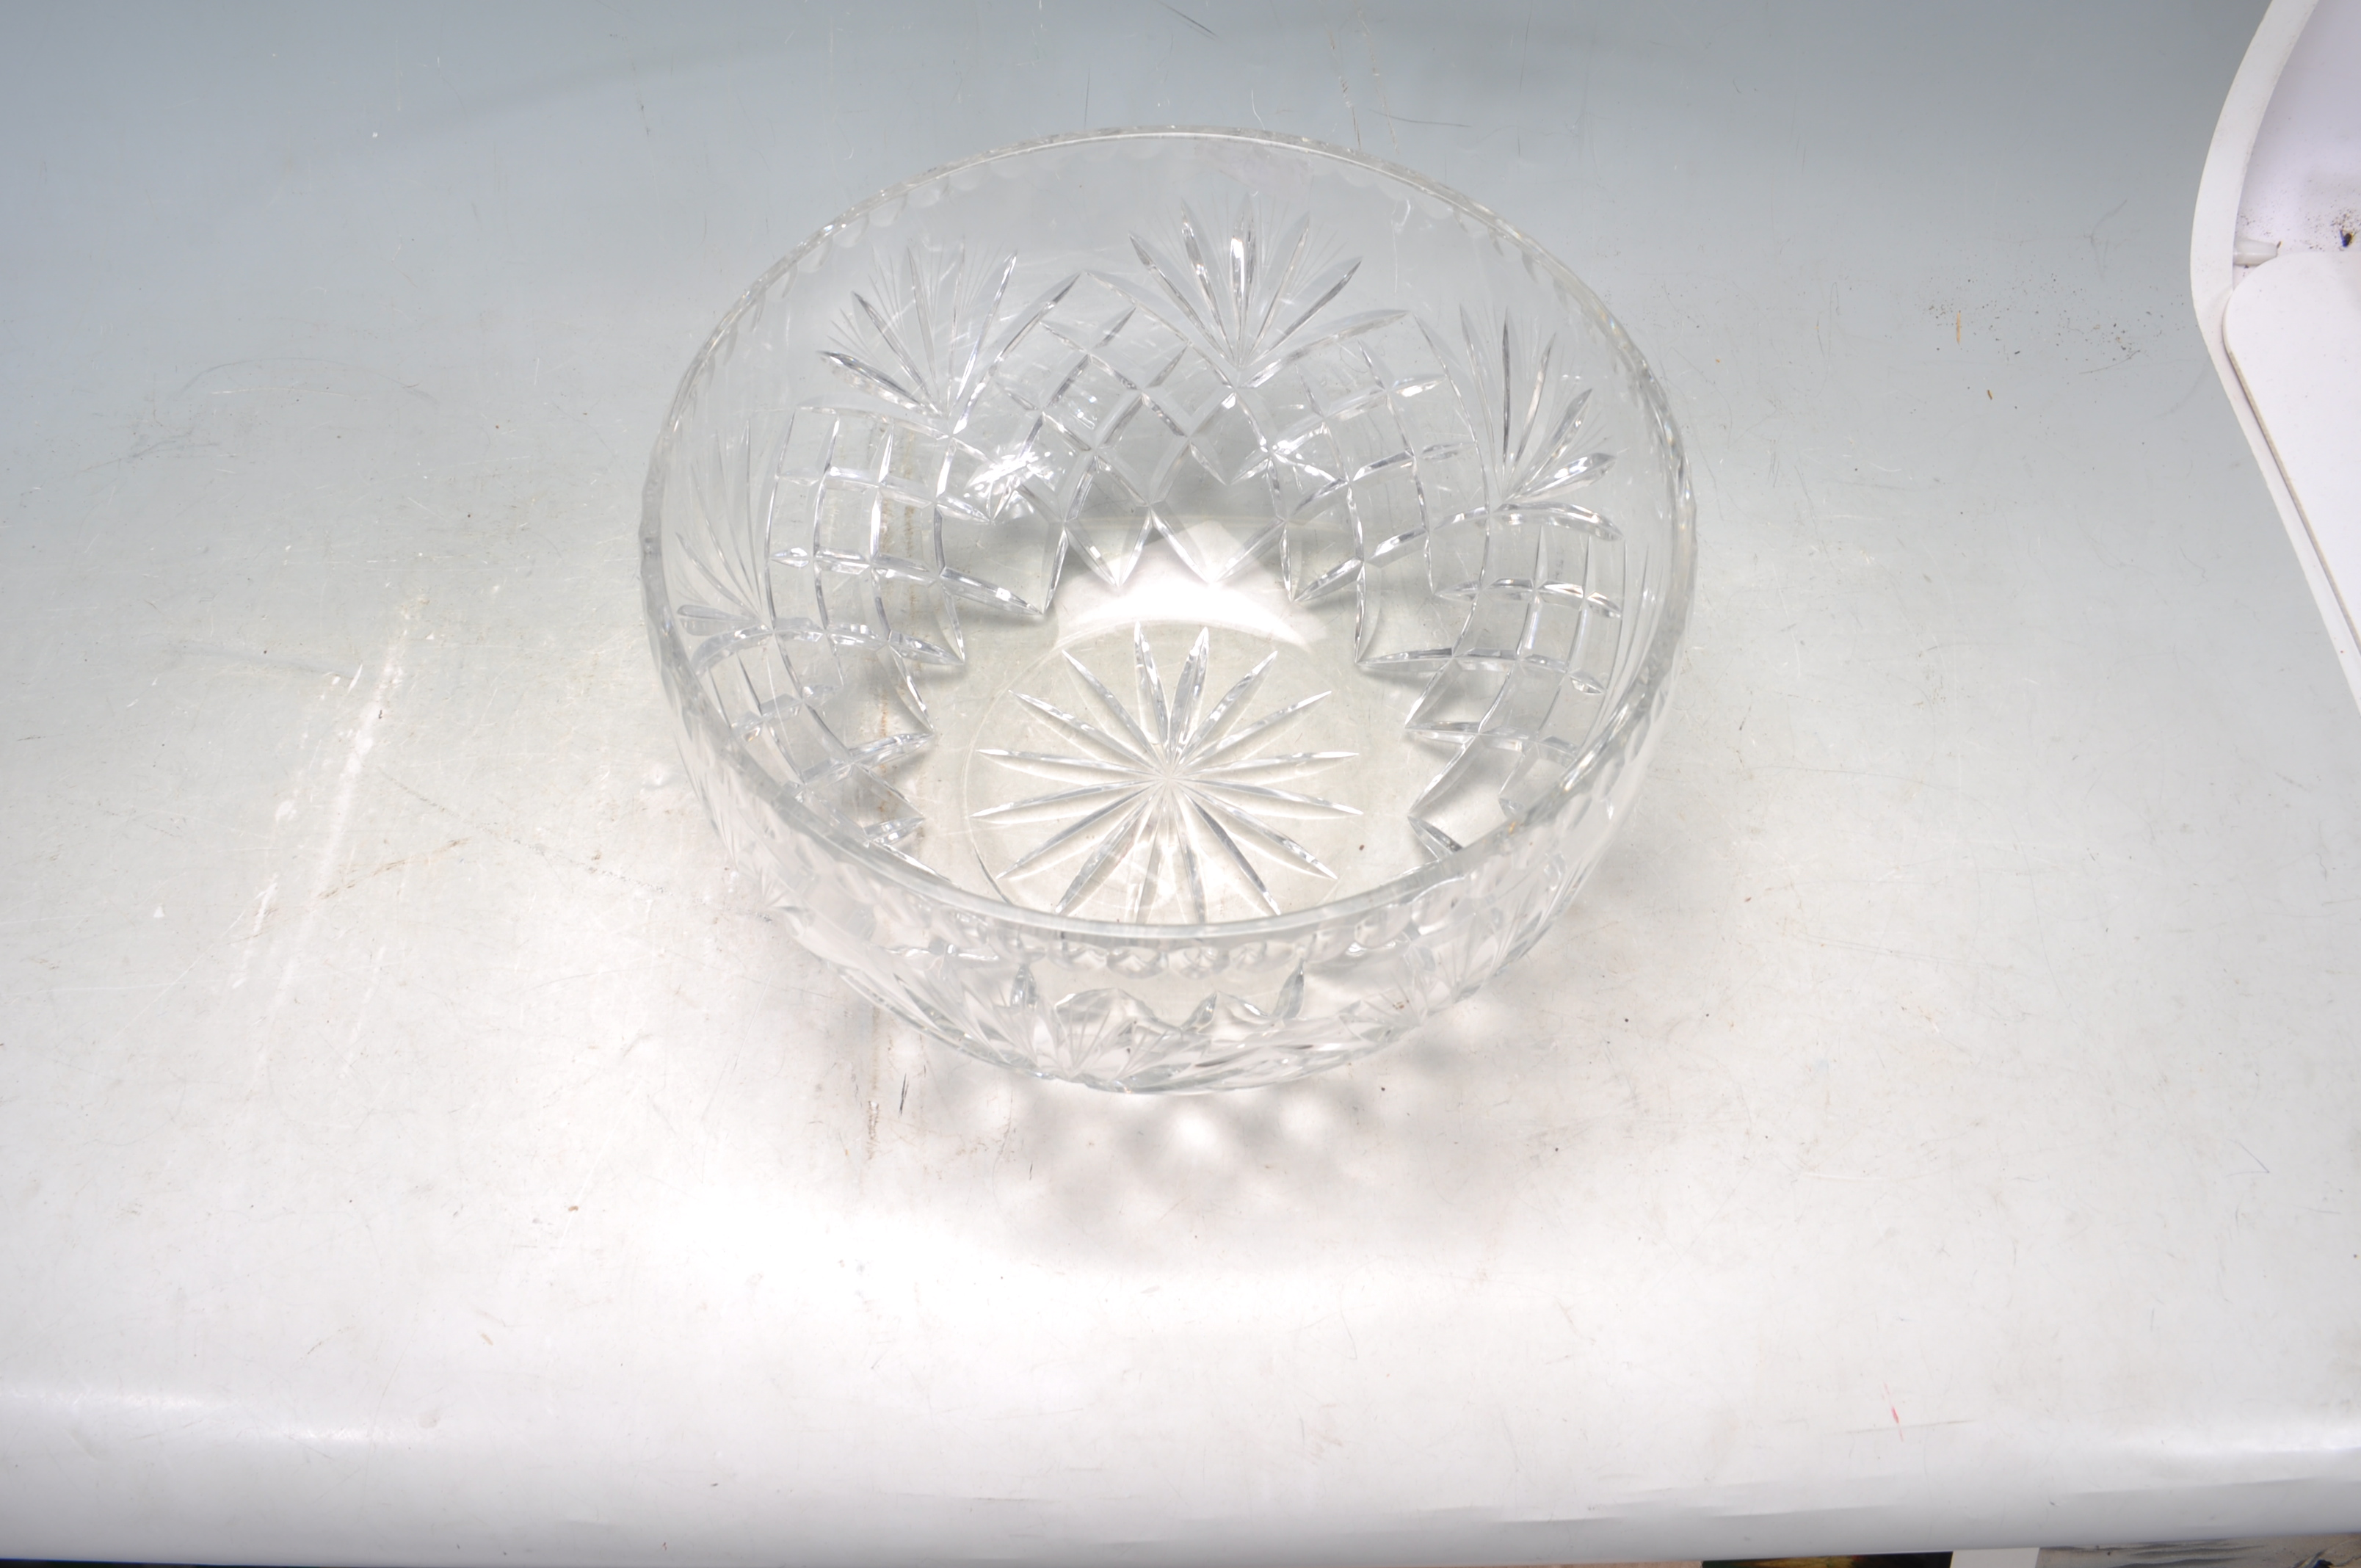 VINTAGE 20TH CENTURY WATERFORD CRYSTAL GLASS BOWL - Image 4 of 5